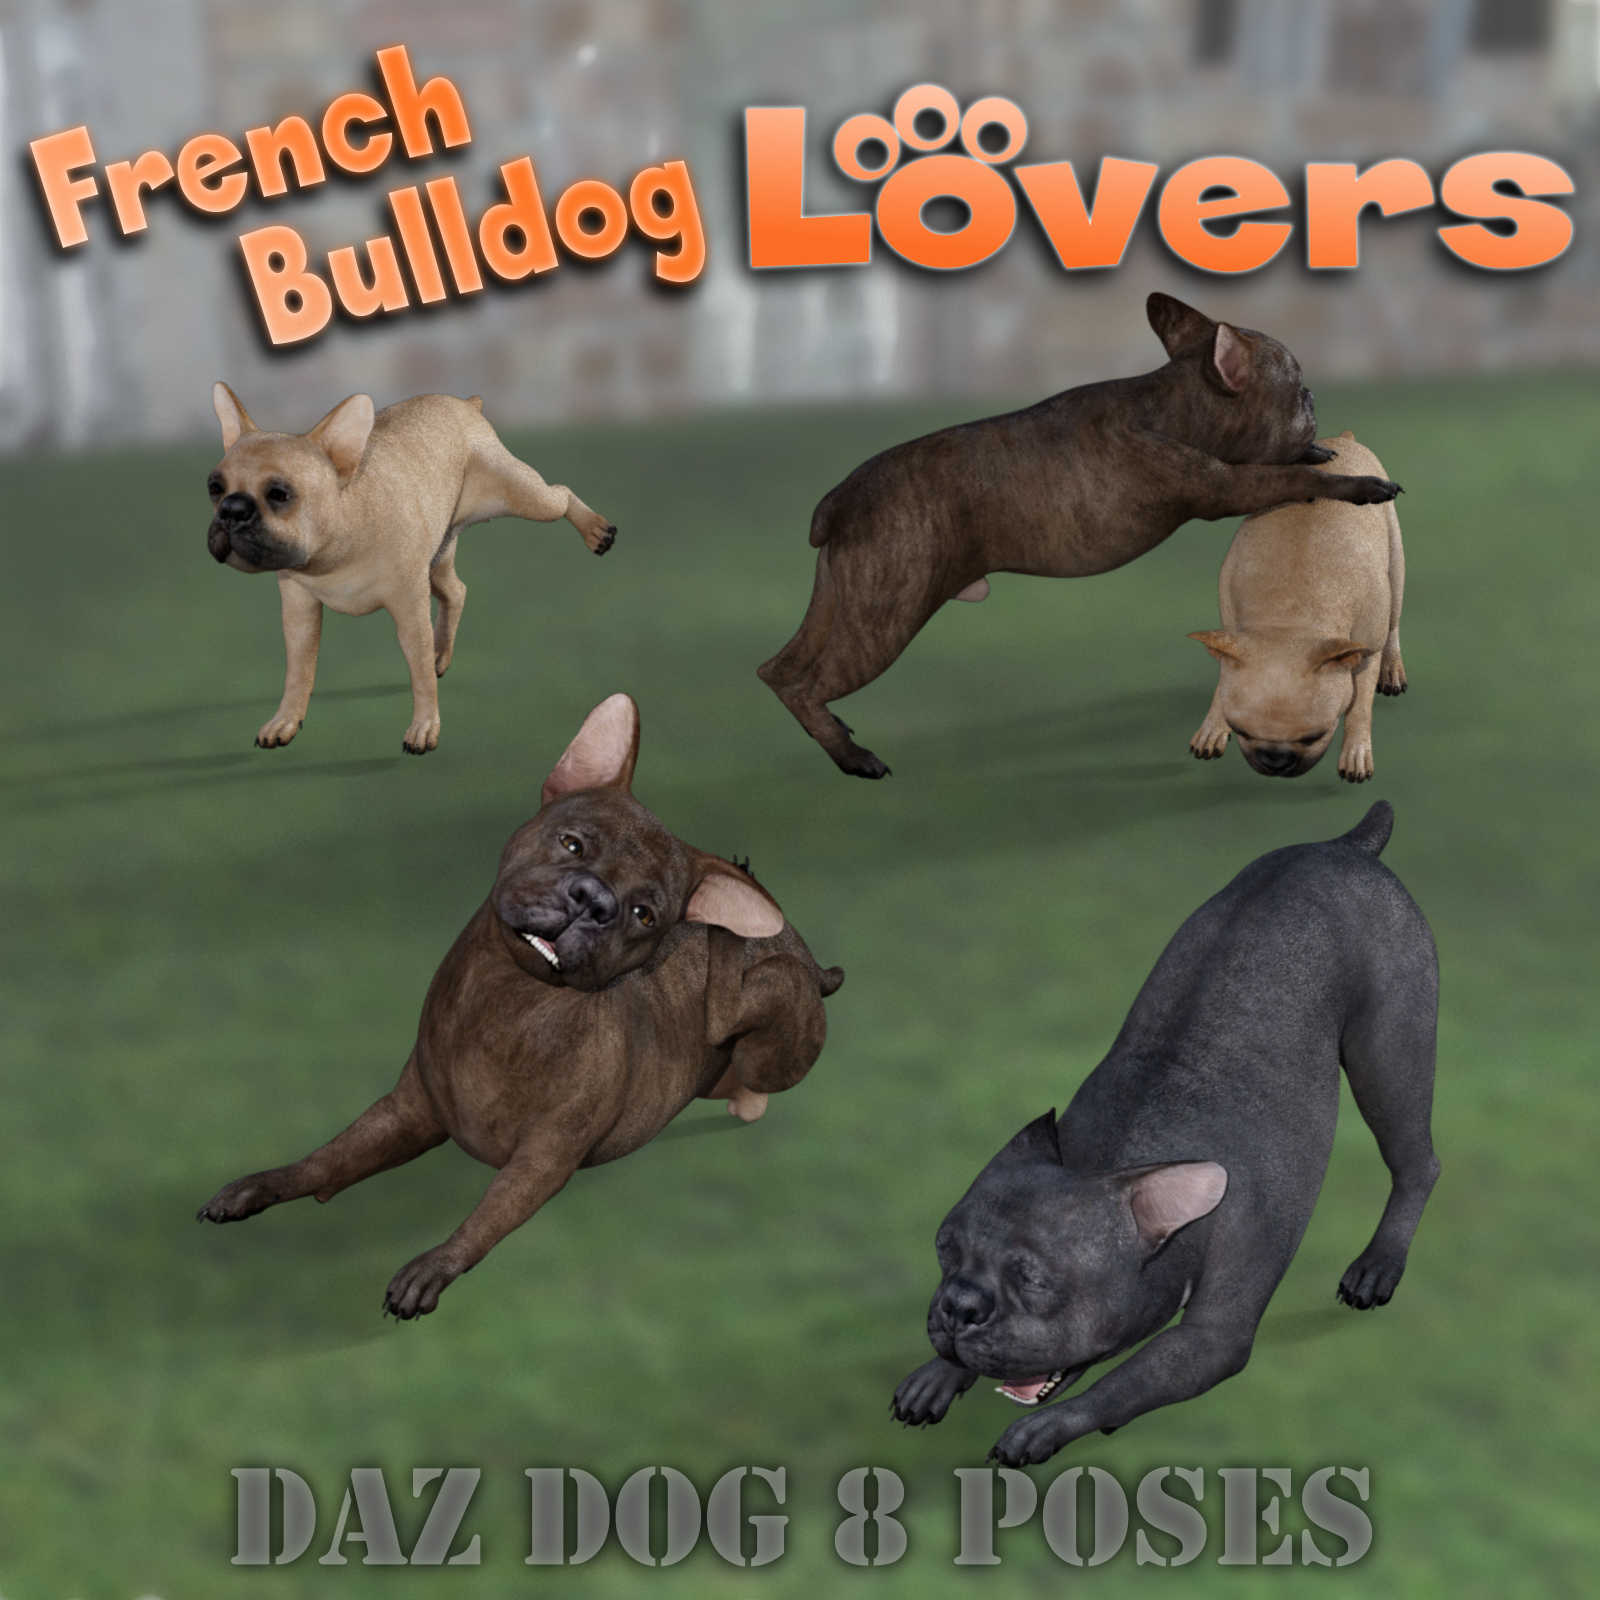 FRENCH BULLDOG Lovers Poses for French Bulldog Breed (Daz Dog 8) by Winterbrose